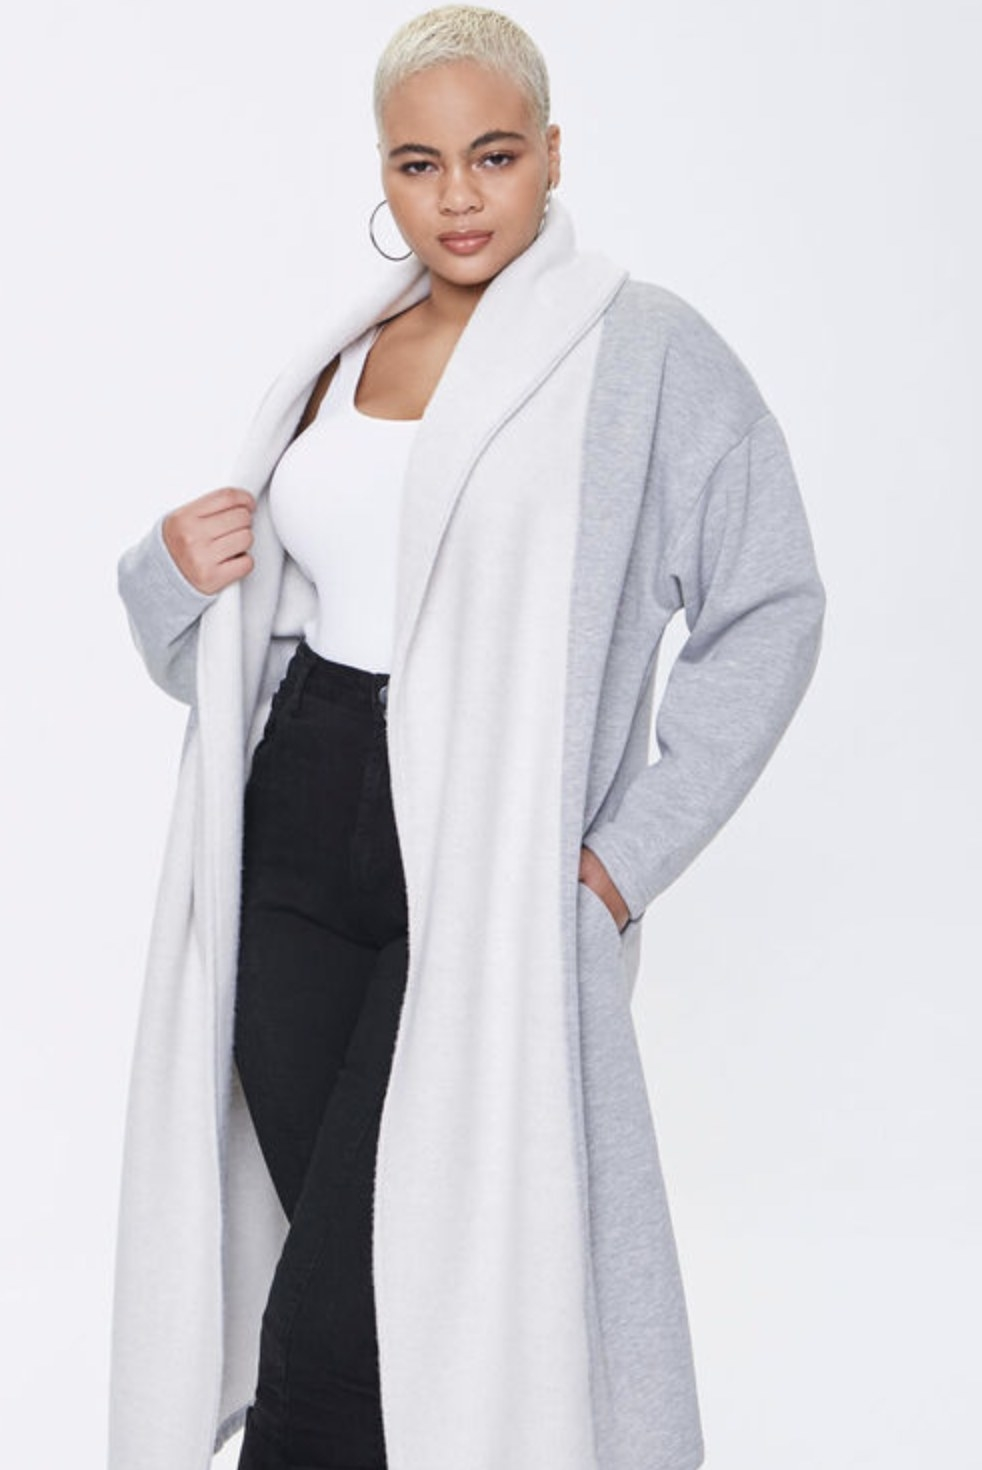 Model is wearing a white and grey long coat, white top, and black pants